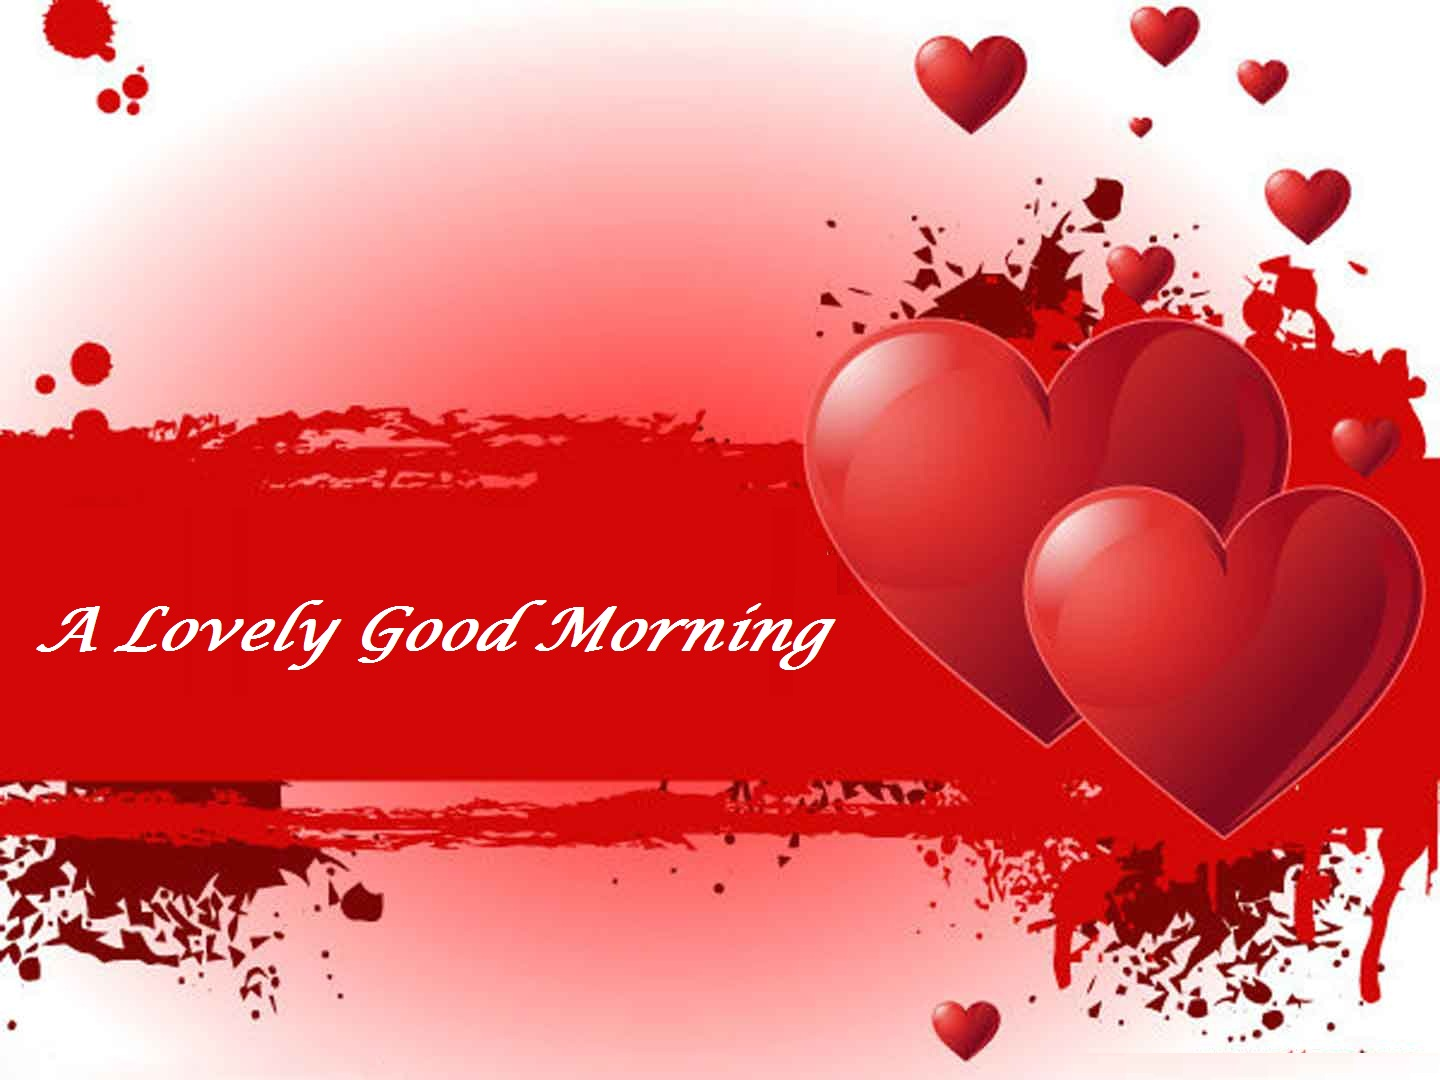 http://2.bp.blogspot.com/-11ISwPB-sJ4/USmW5nM7WlI/AAAAAAAAPhY/3I7aDhxoJSg/s1600/Good-Morning-Lovely-Wishes-6.jpg